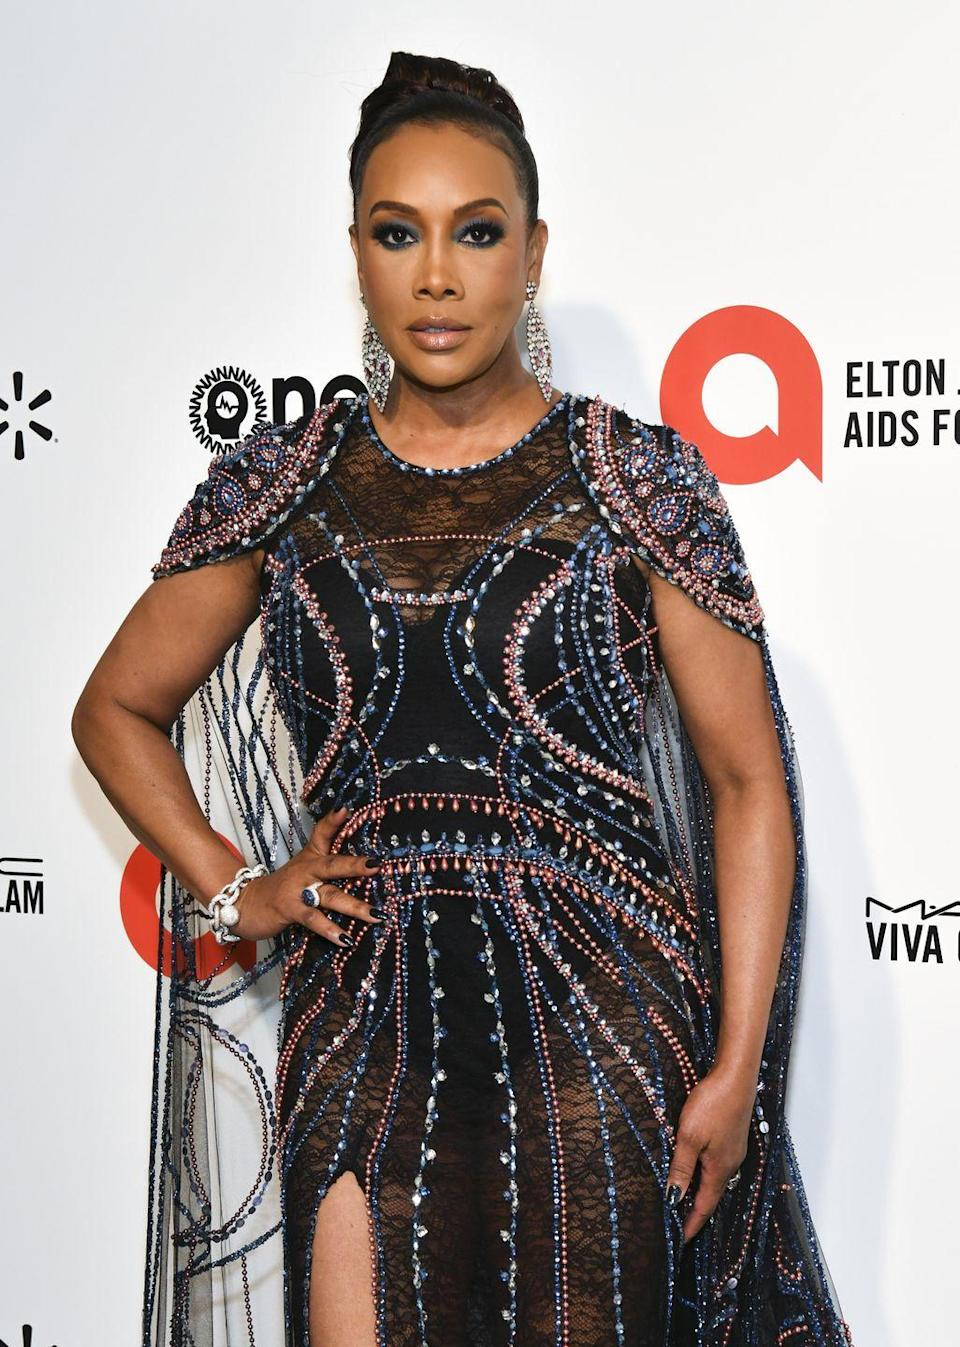 <p>Since she's in sooo many hit shows and movies (hi,<em> Empire</em>), Vivica's Leo energy definitely makes her perfect for center stage. </p><p><strong>Birthday:</strong> July 30, 1964 </p>